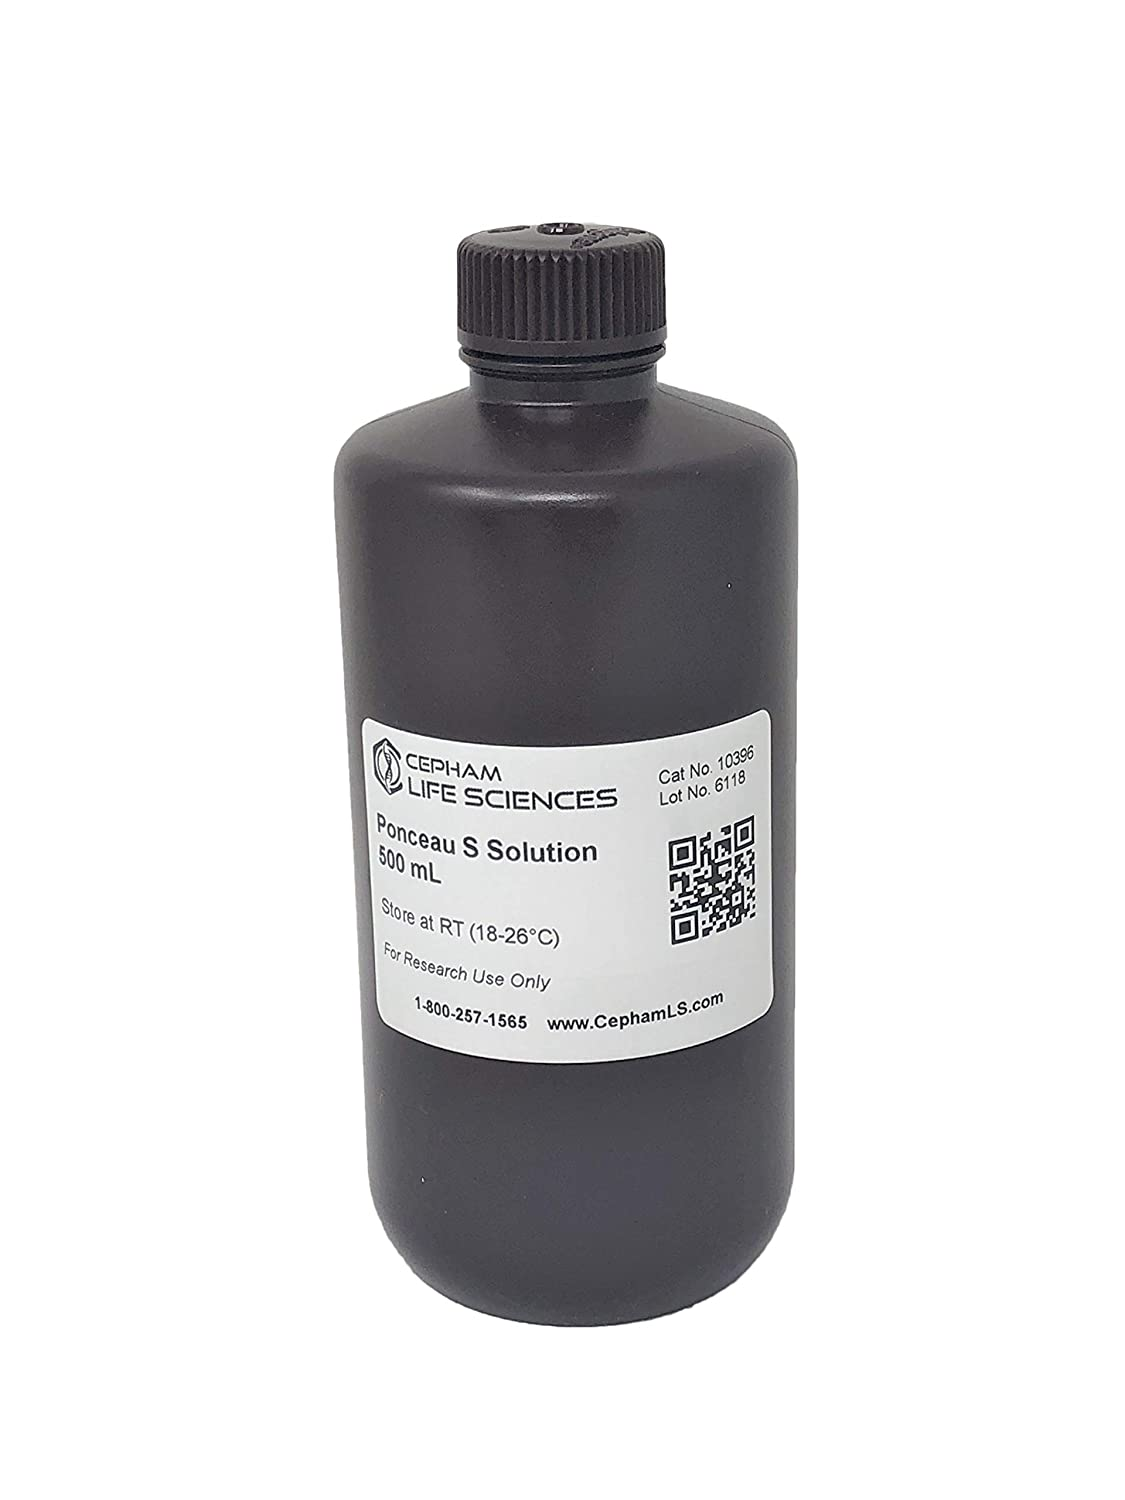 Ponceau S Staining Ultra-Cheap Deals Solution - 500 Life Popularity Cepham mL Sciences -from